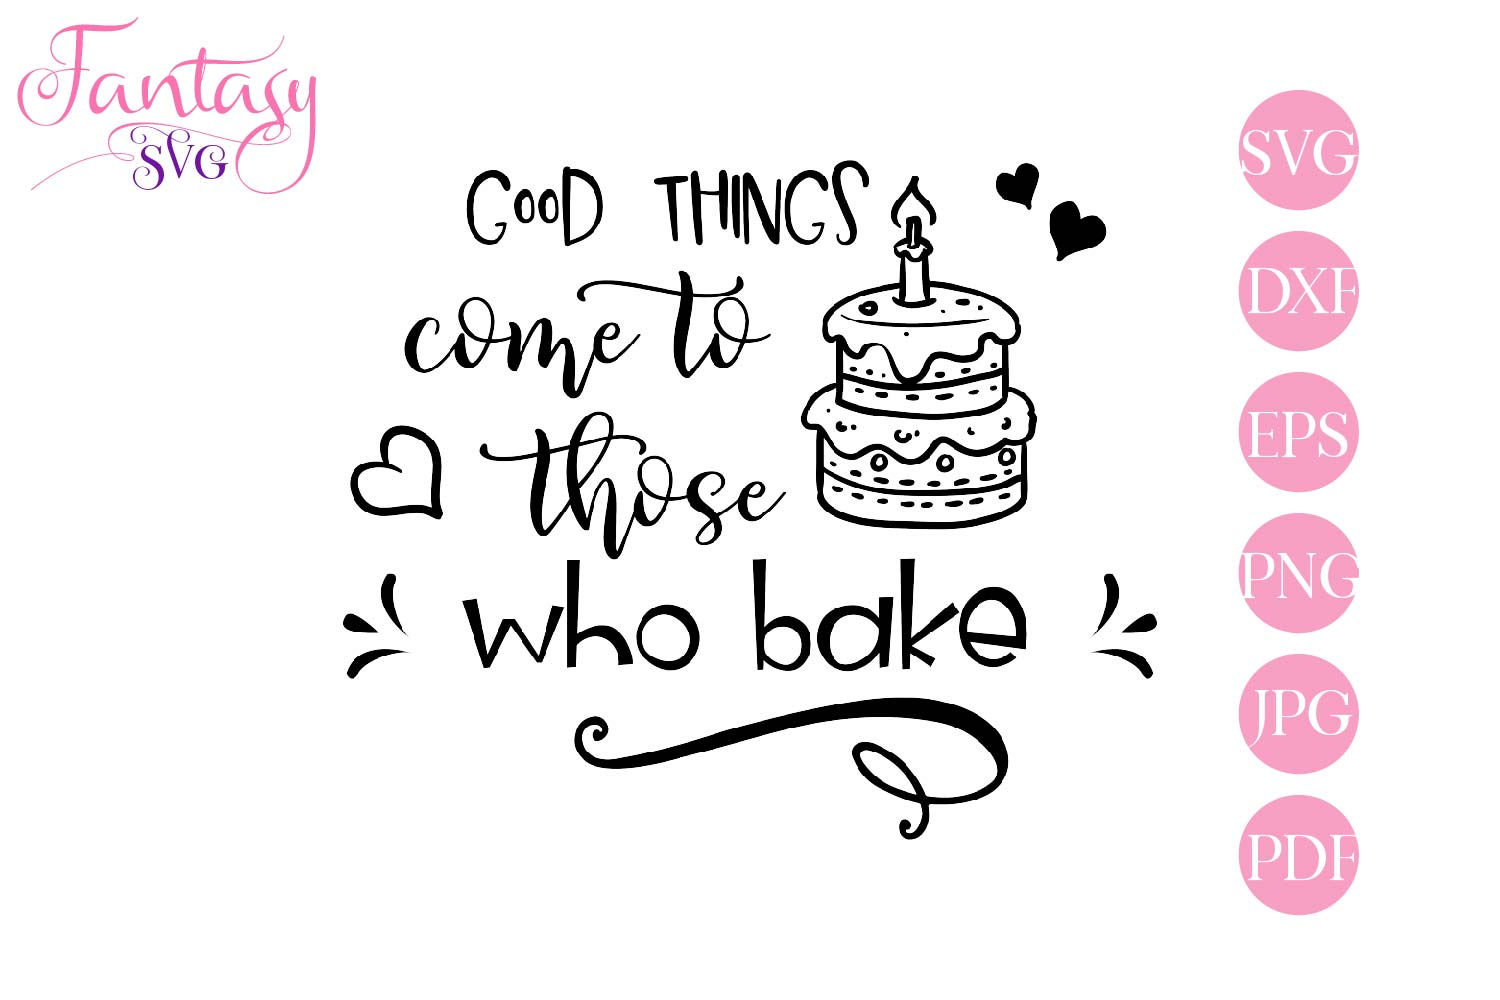 Good things come to those who bake - svg cut file example image 2